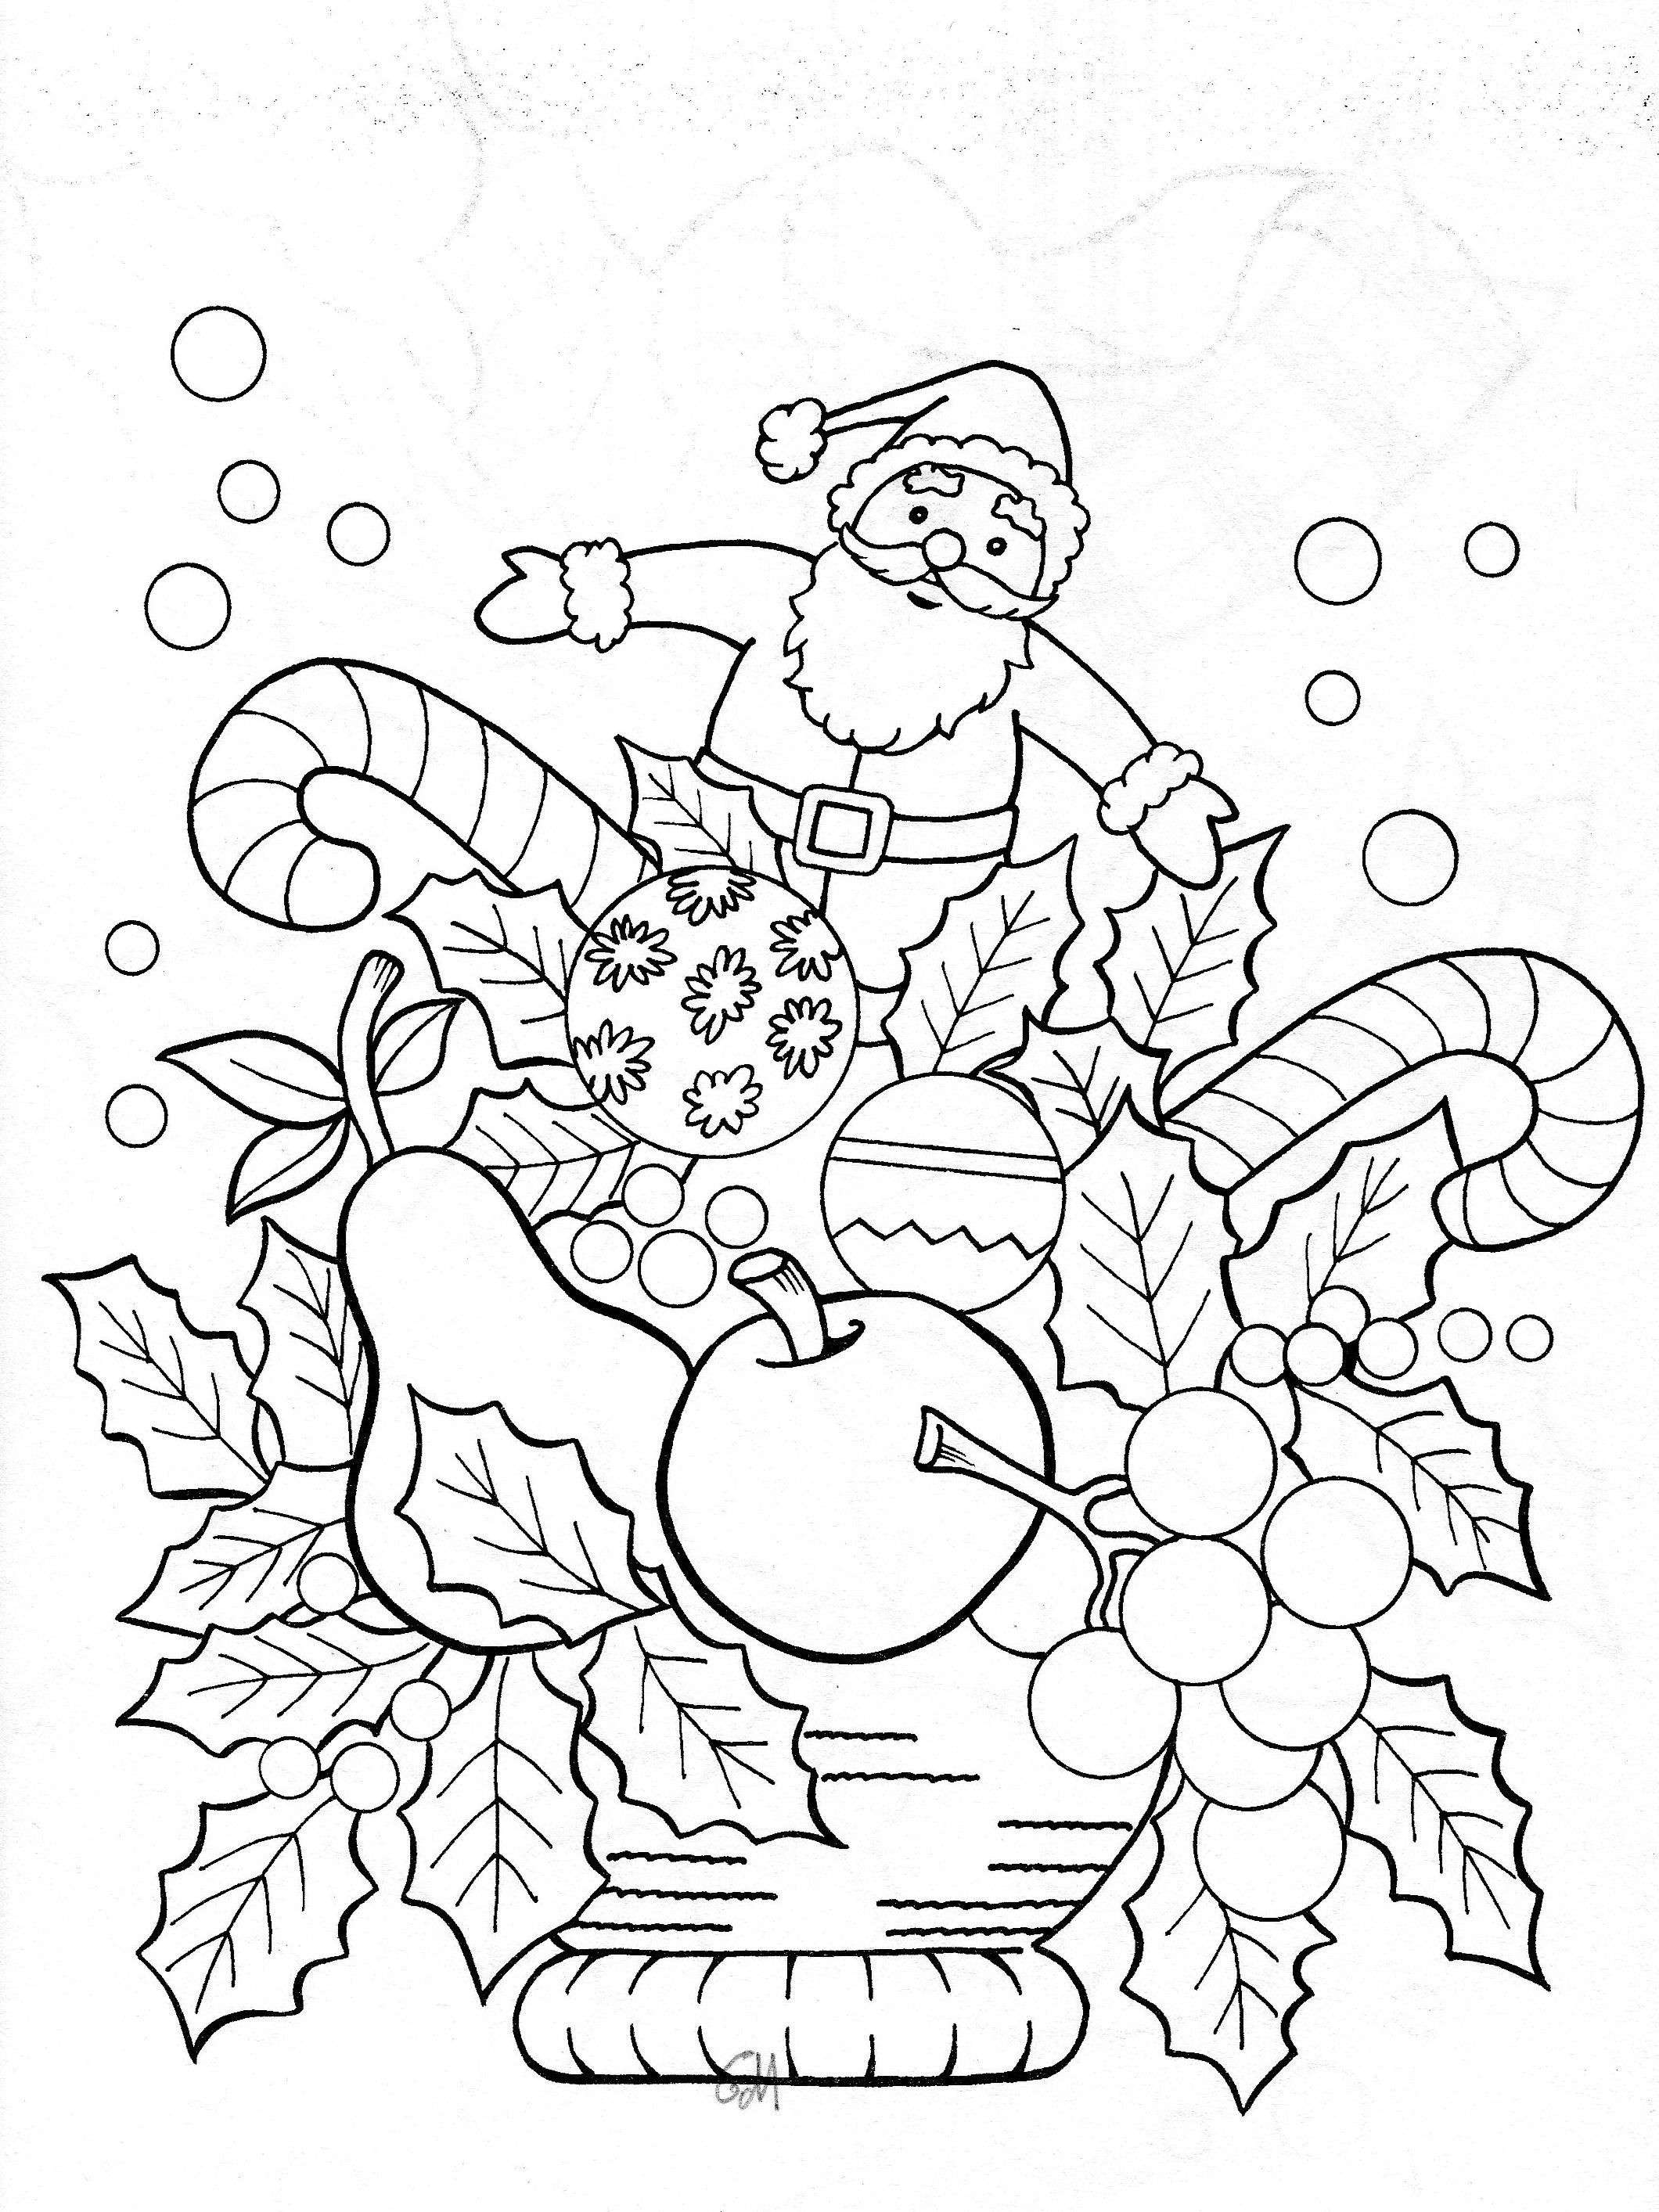 Christmas Horse Coloring Pages With Black And White